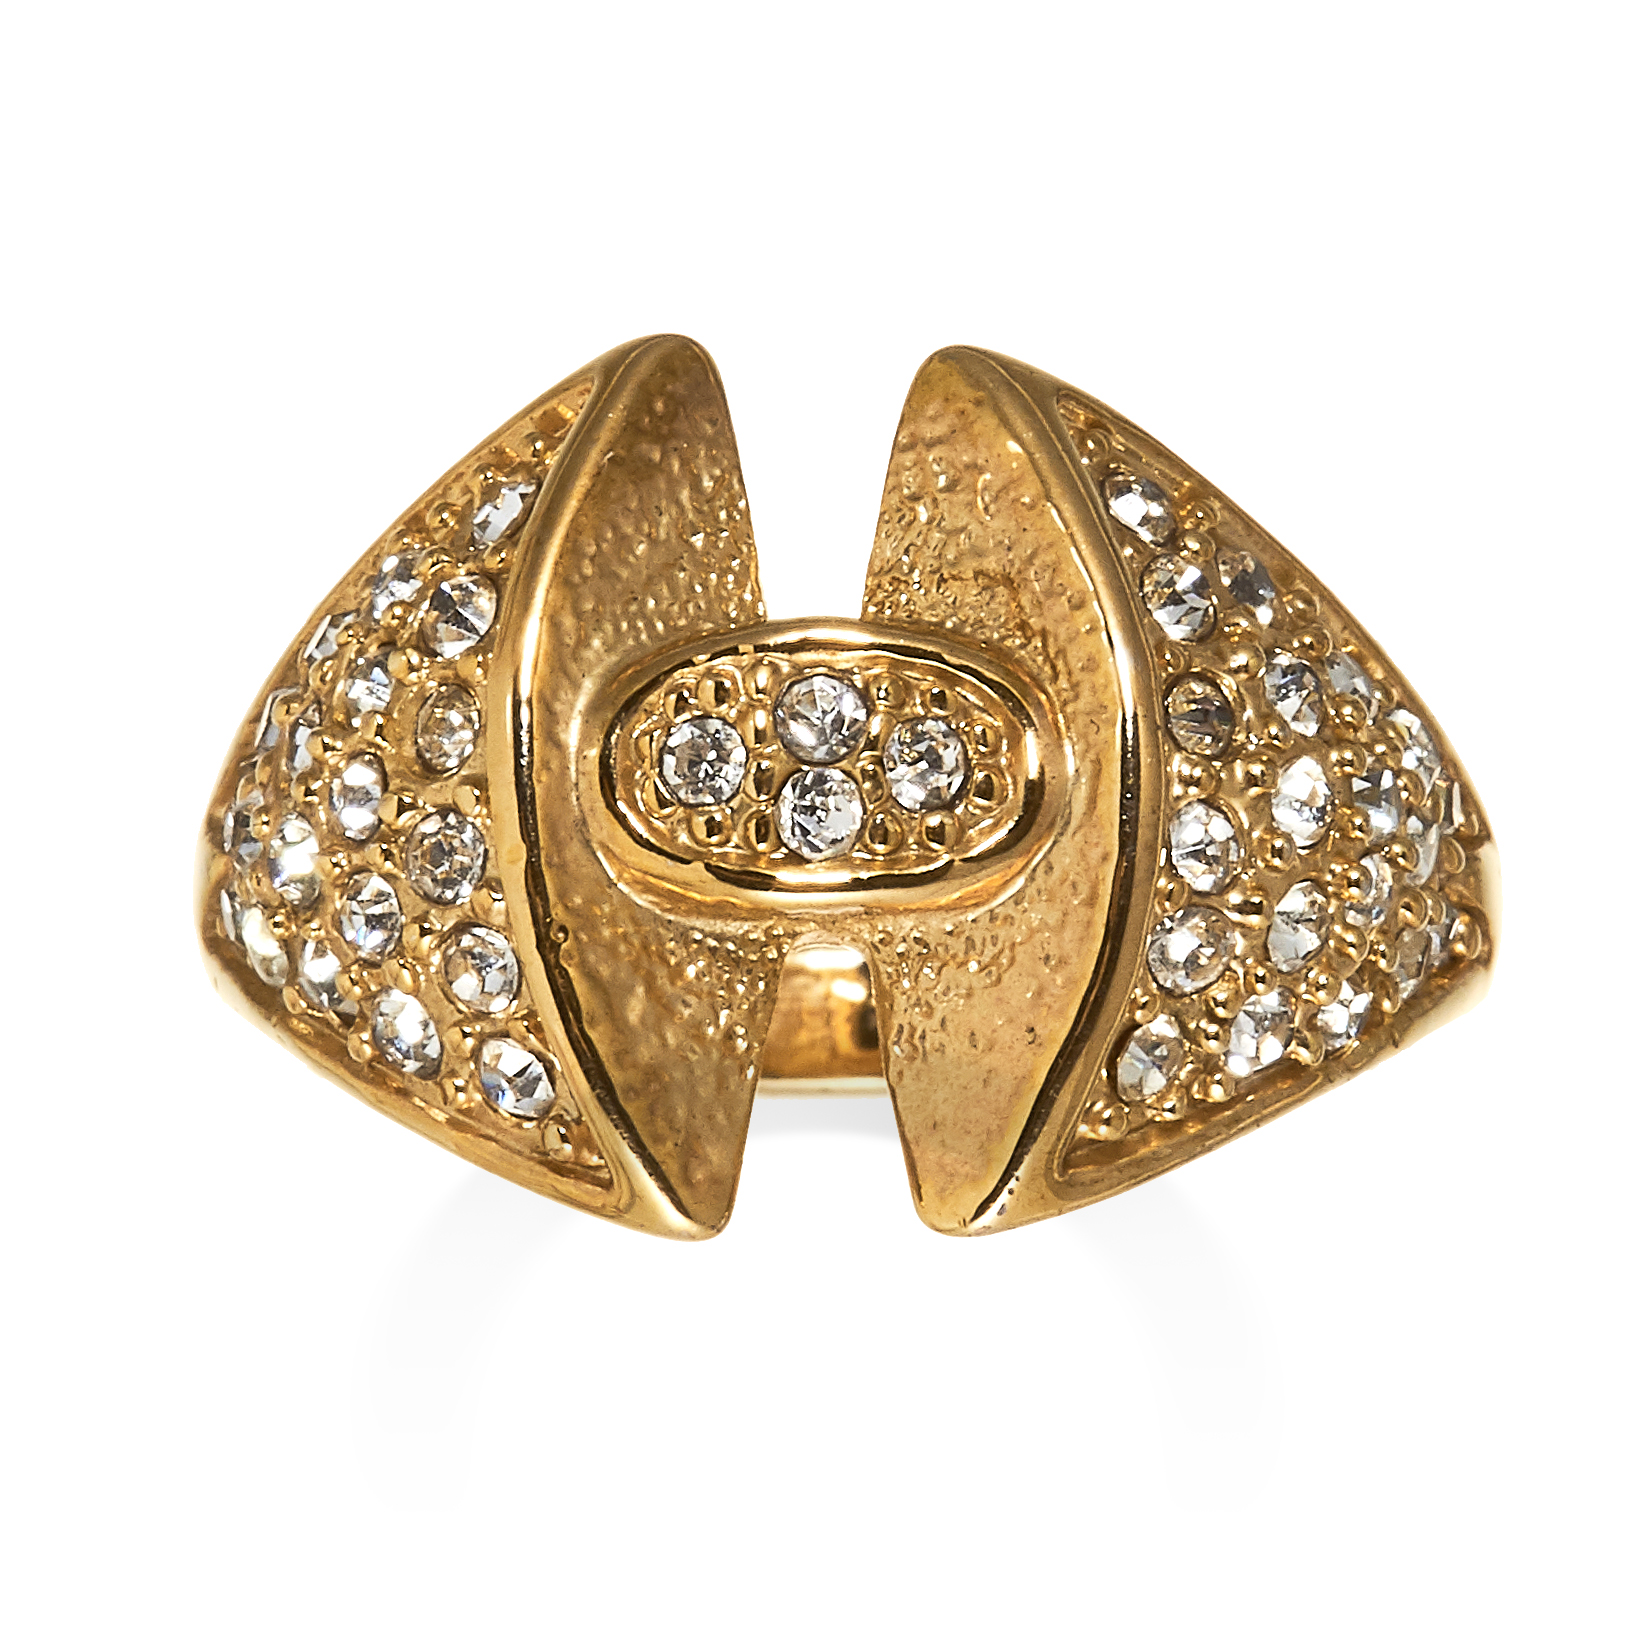 DIAMOND DRESS RING the central oval motif set with round cut diamonds, between tapering shoulders